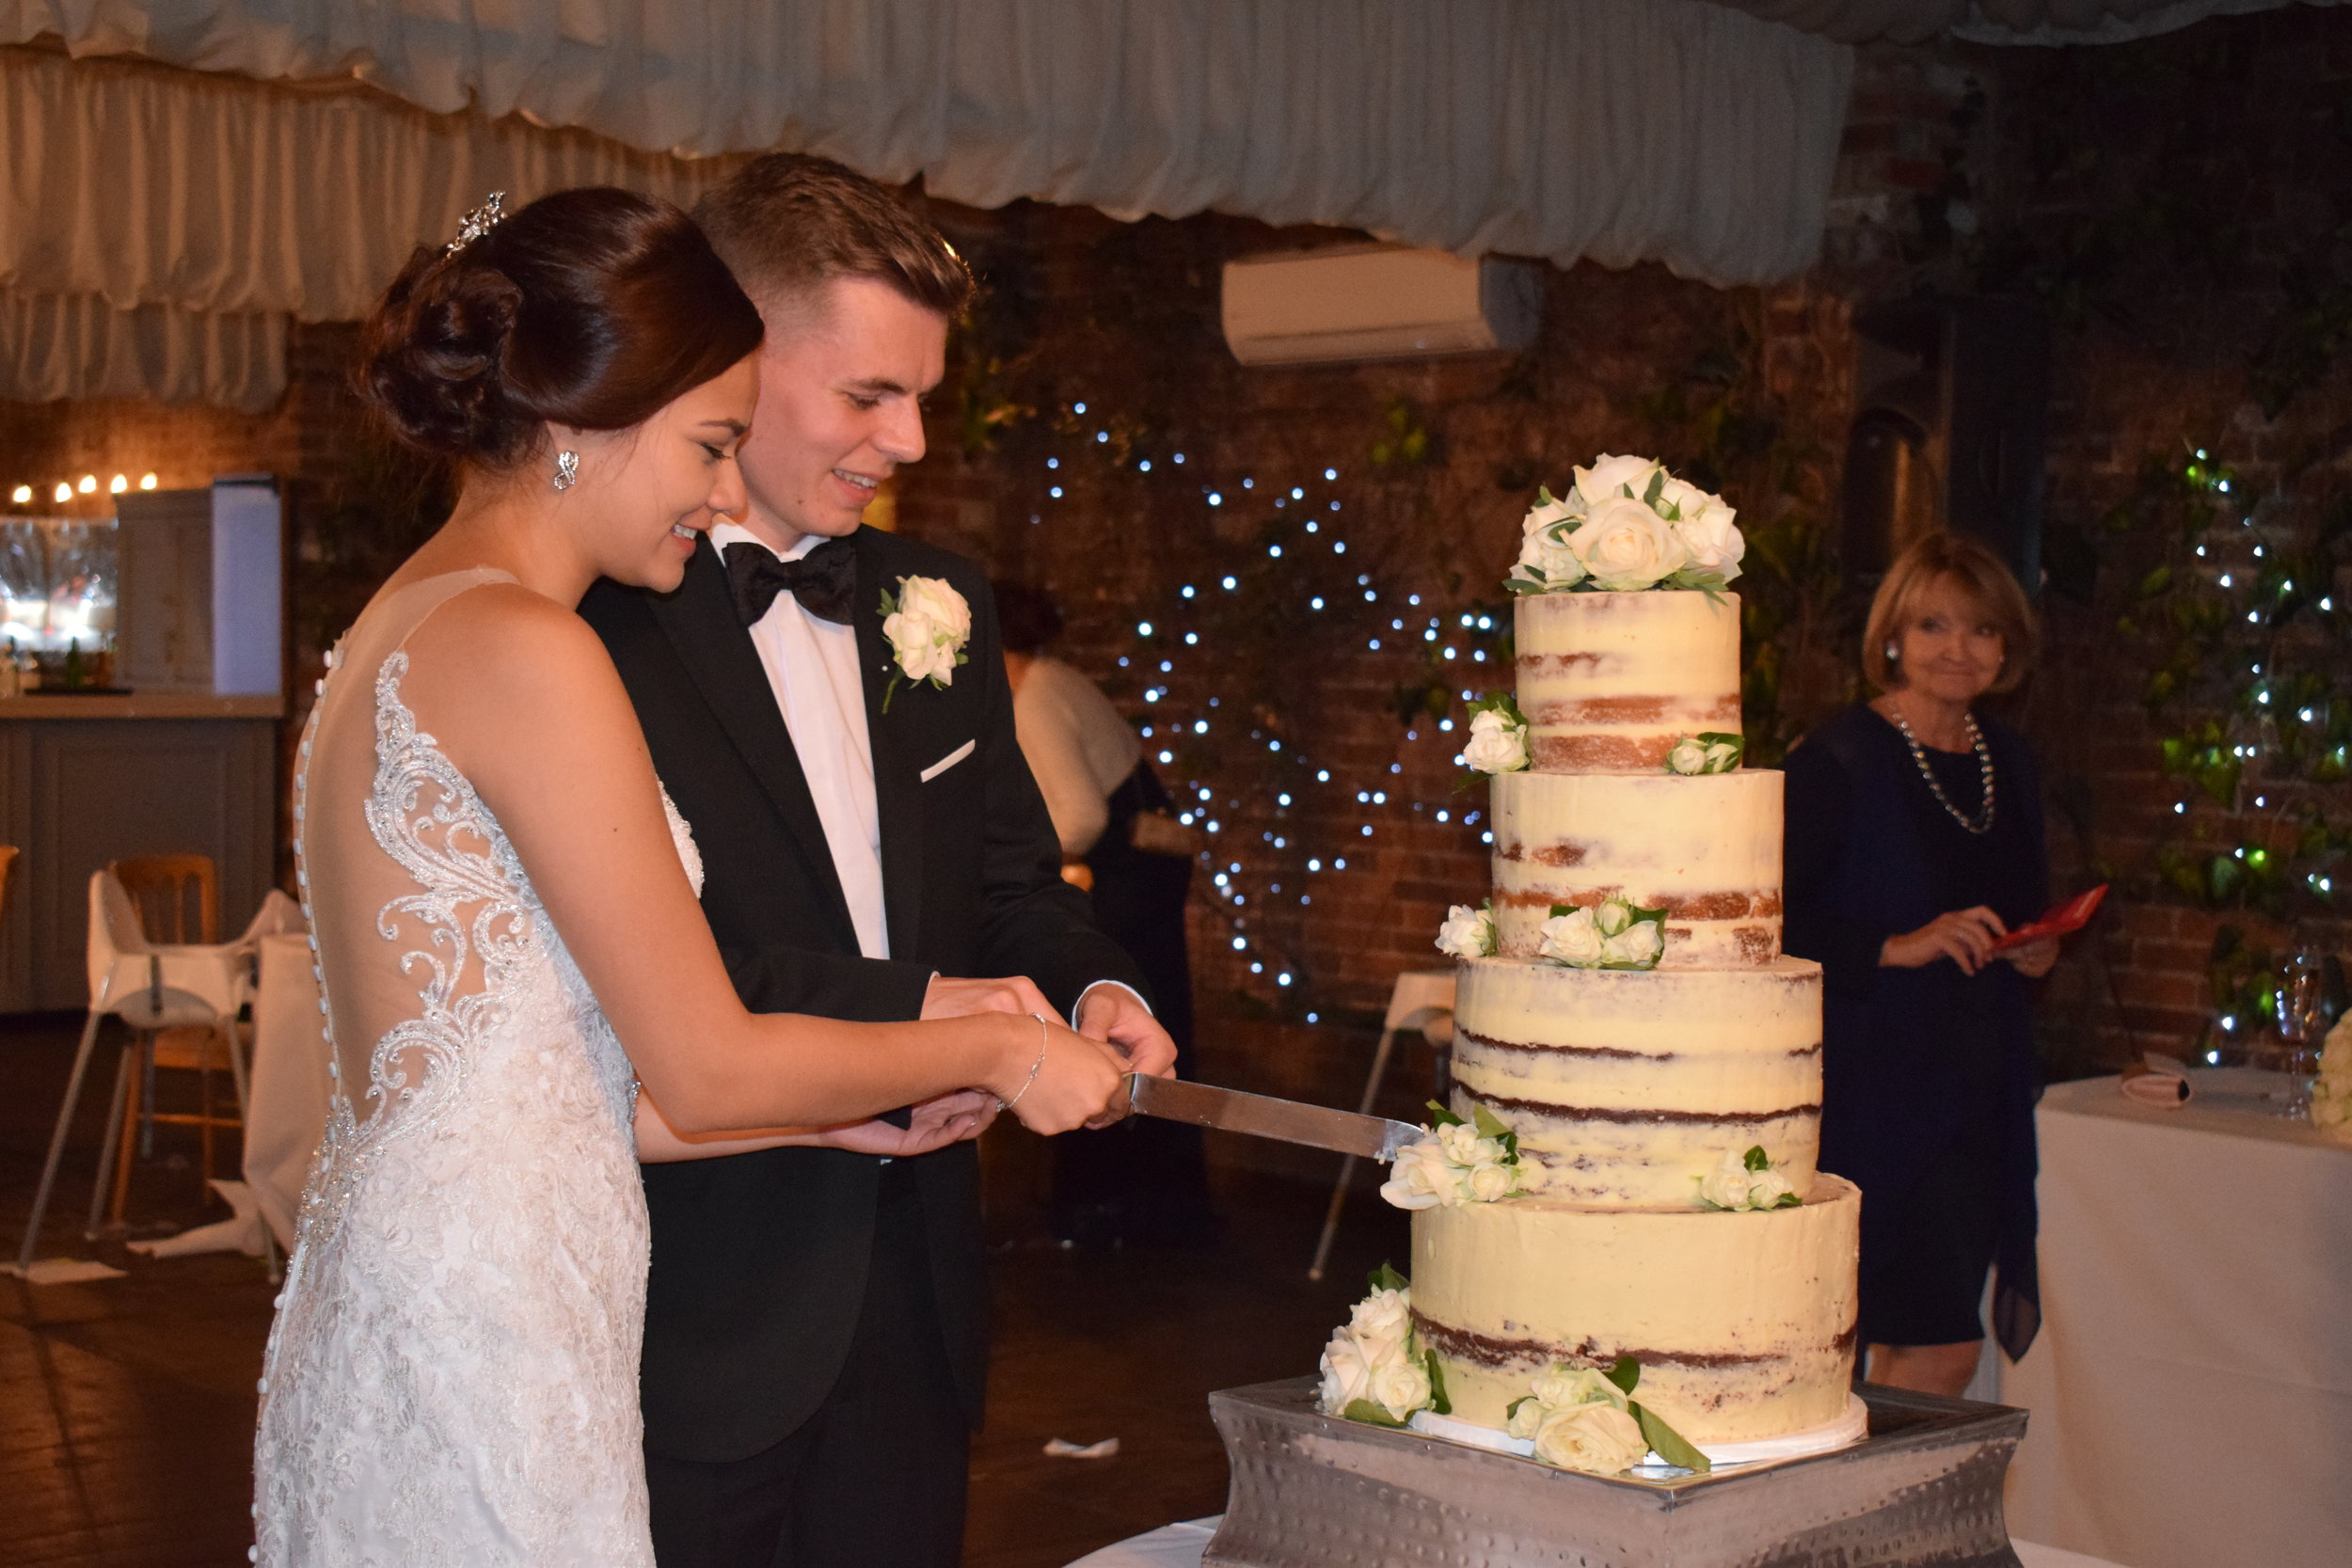 Wedding photo ideas: the bride and groom cutting the wedding cake